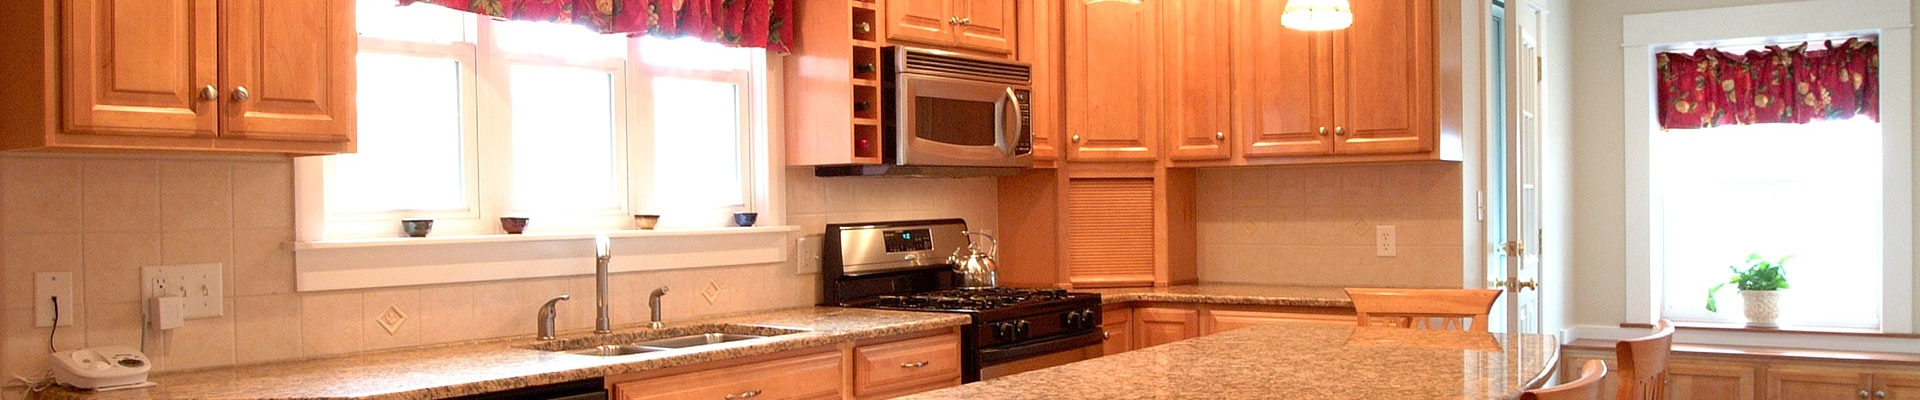 banner-bg-kitchen